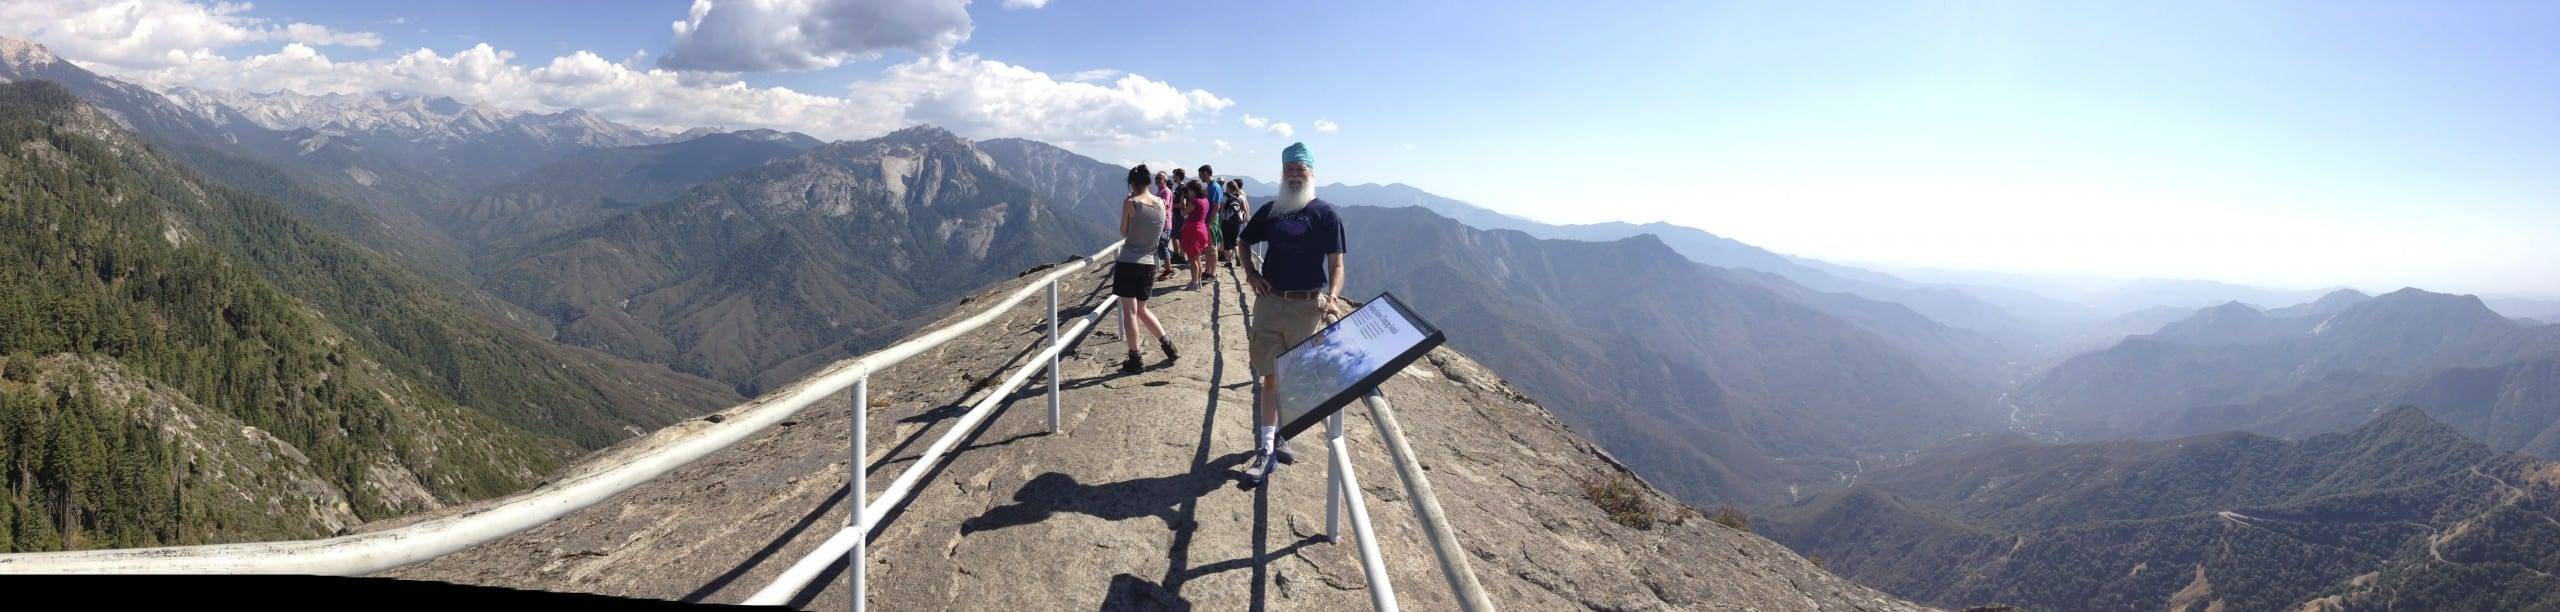 Top of Moro Rock, Sierras on one side, Giant Forest on the other